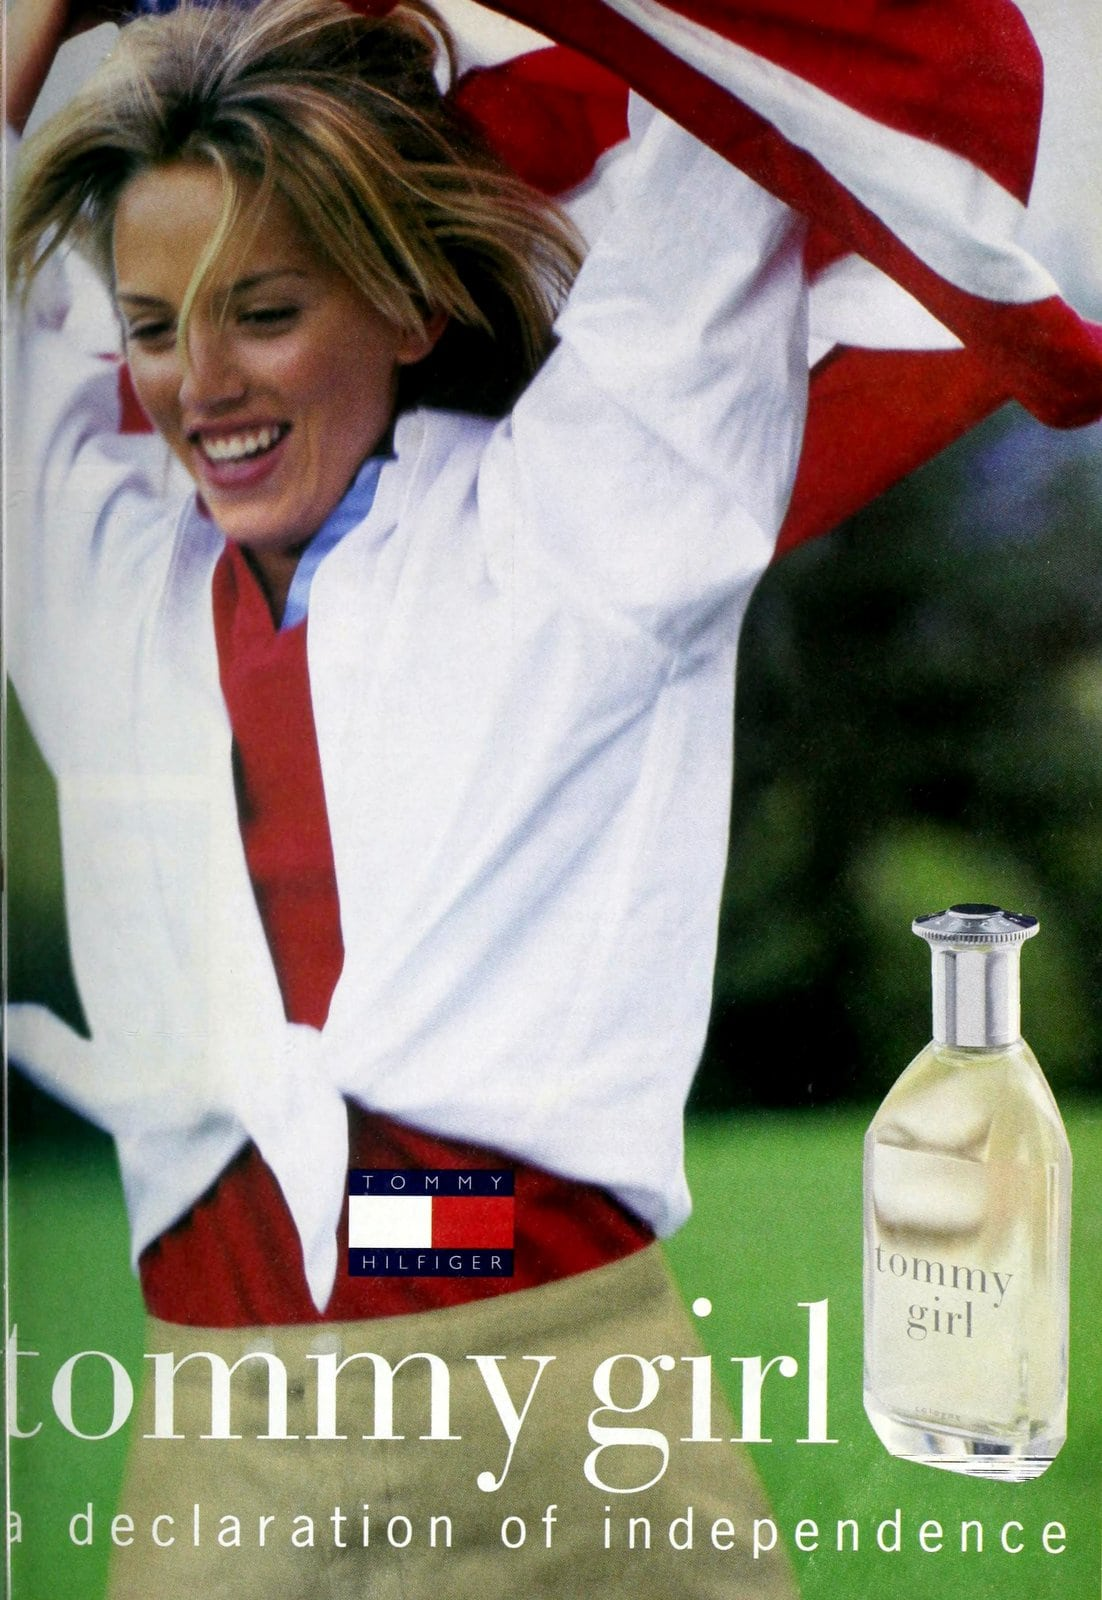 Popular vintage perfumes from the '90s - Tommy Girl fragrance from Tommy Hilfiger (1998) at ClickAmericana.com